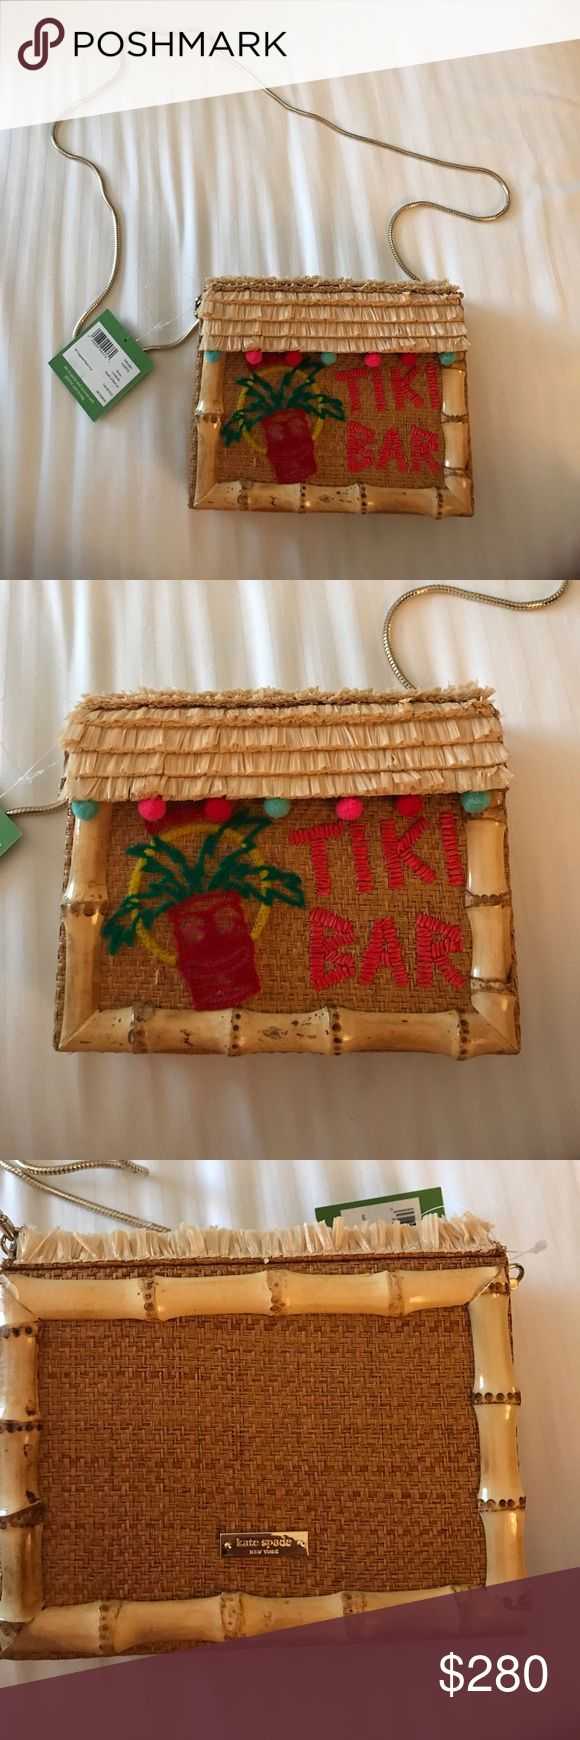 🎉24 hour sale!!! 🎉🎉Kate Spade Tiki Bar handbag Brand new with tags. Very rare find! Comes with dust bag kate spade Bags Shoulder Bags